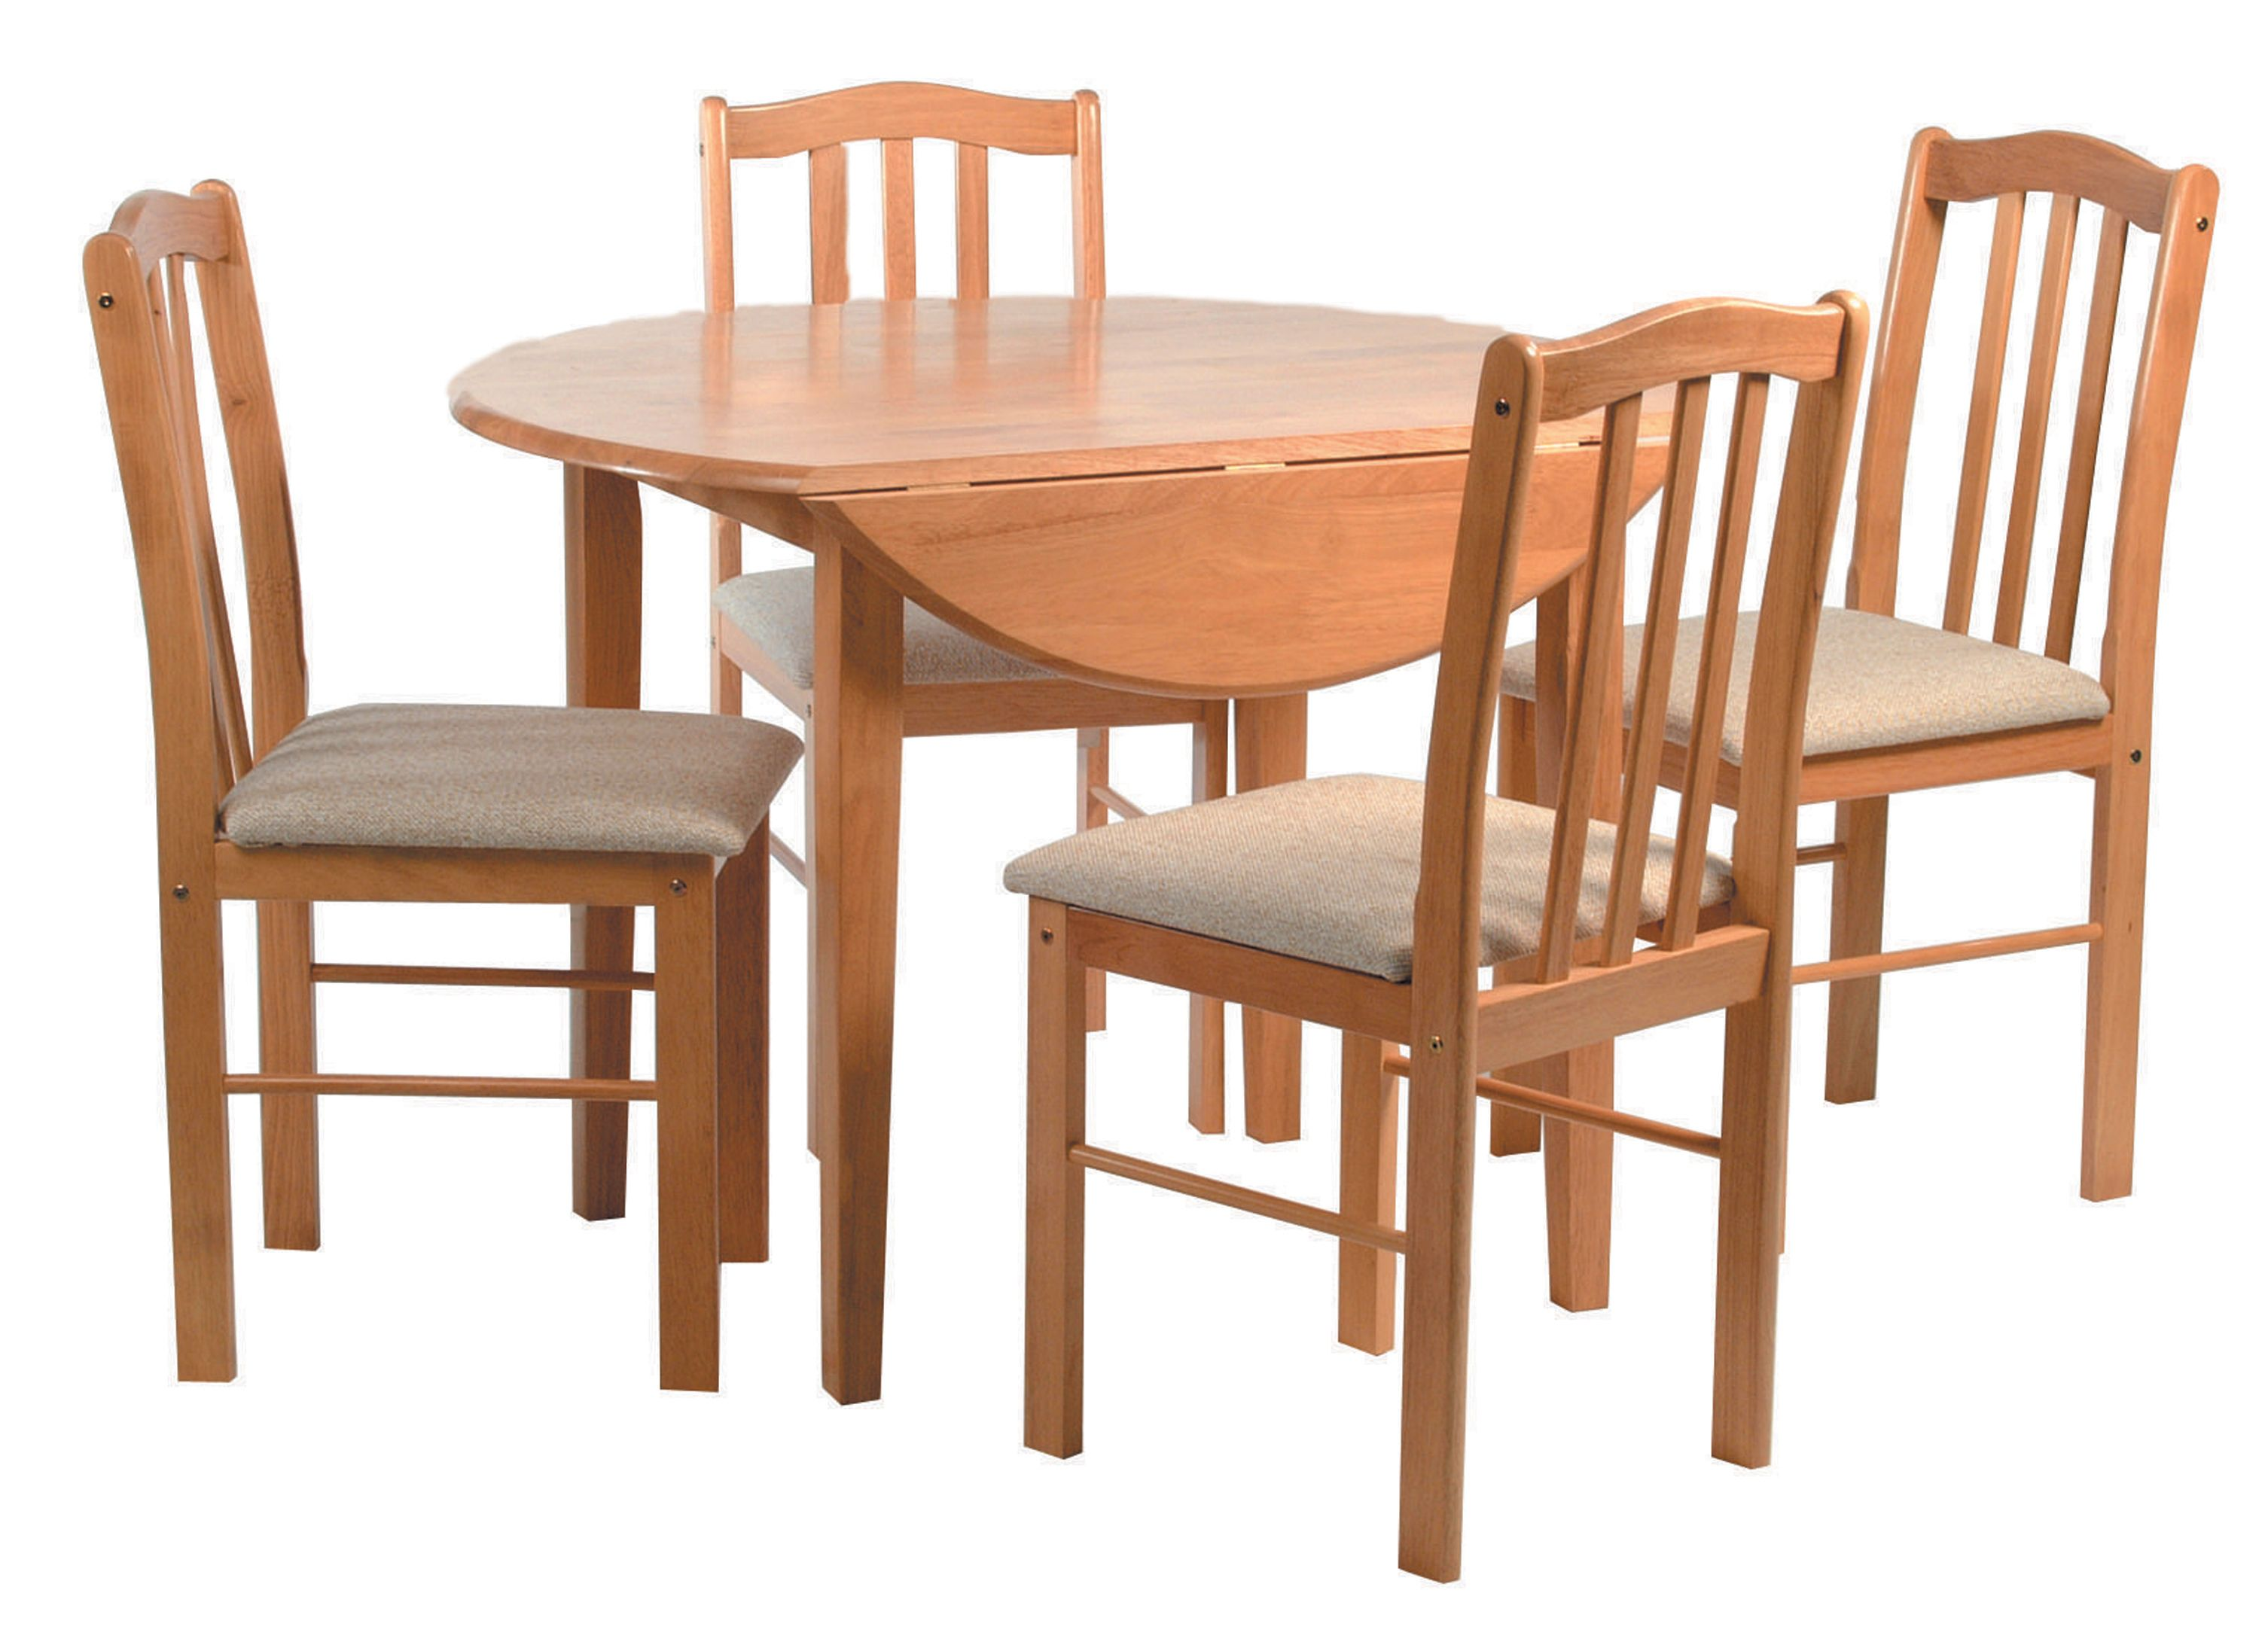 Round Table 6 Chairs Dimensions Aeron Chair Gas Cylinder Replacement Stockholm Natural Beech Finish 40 Quot With Drop